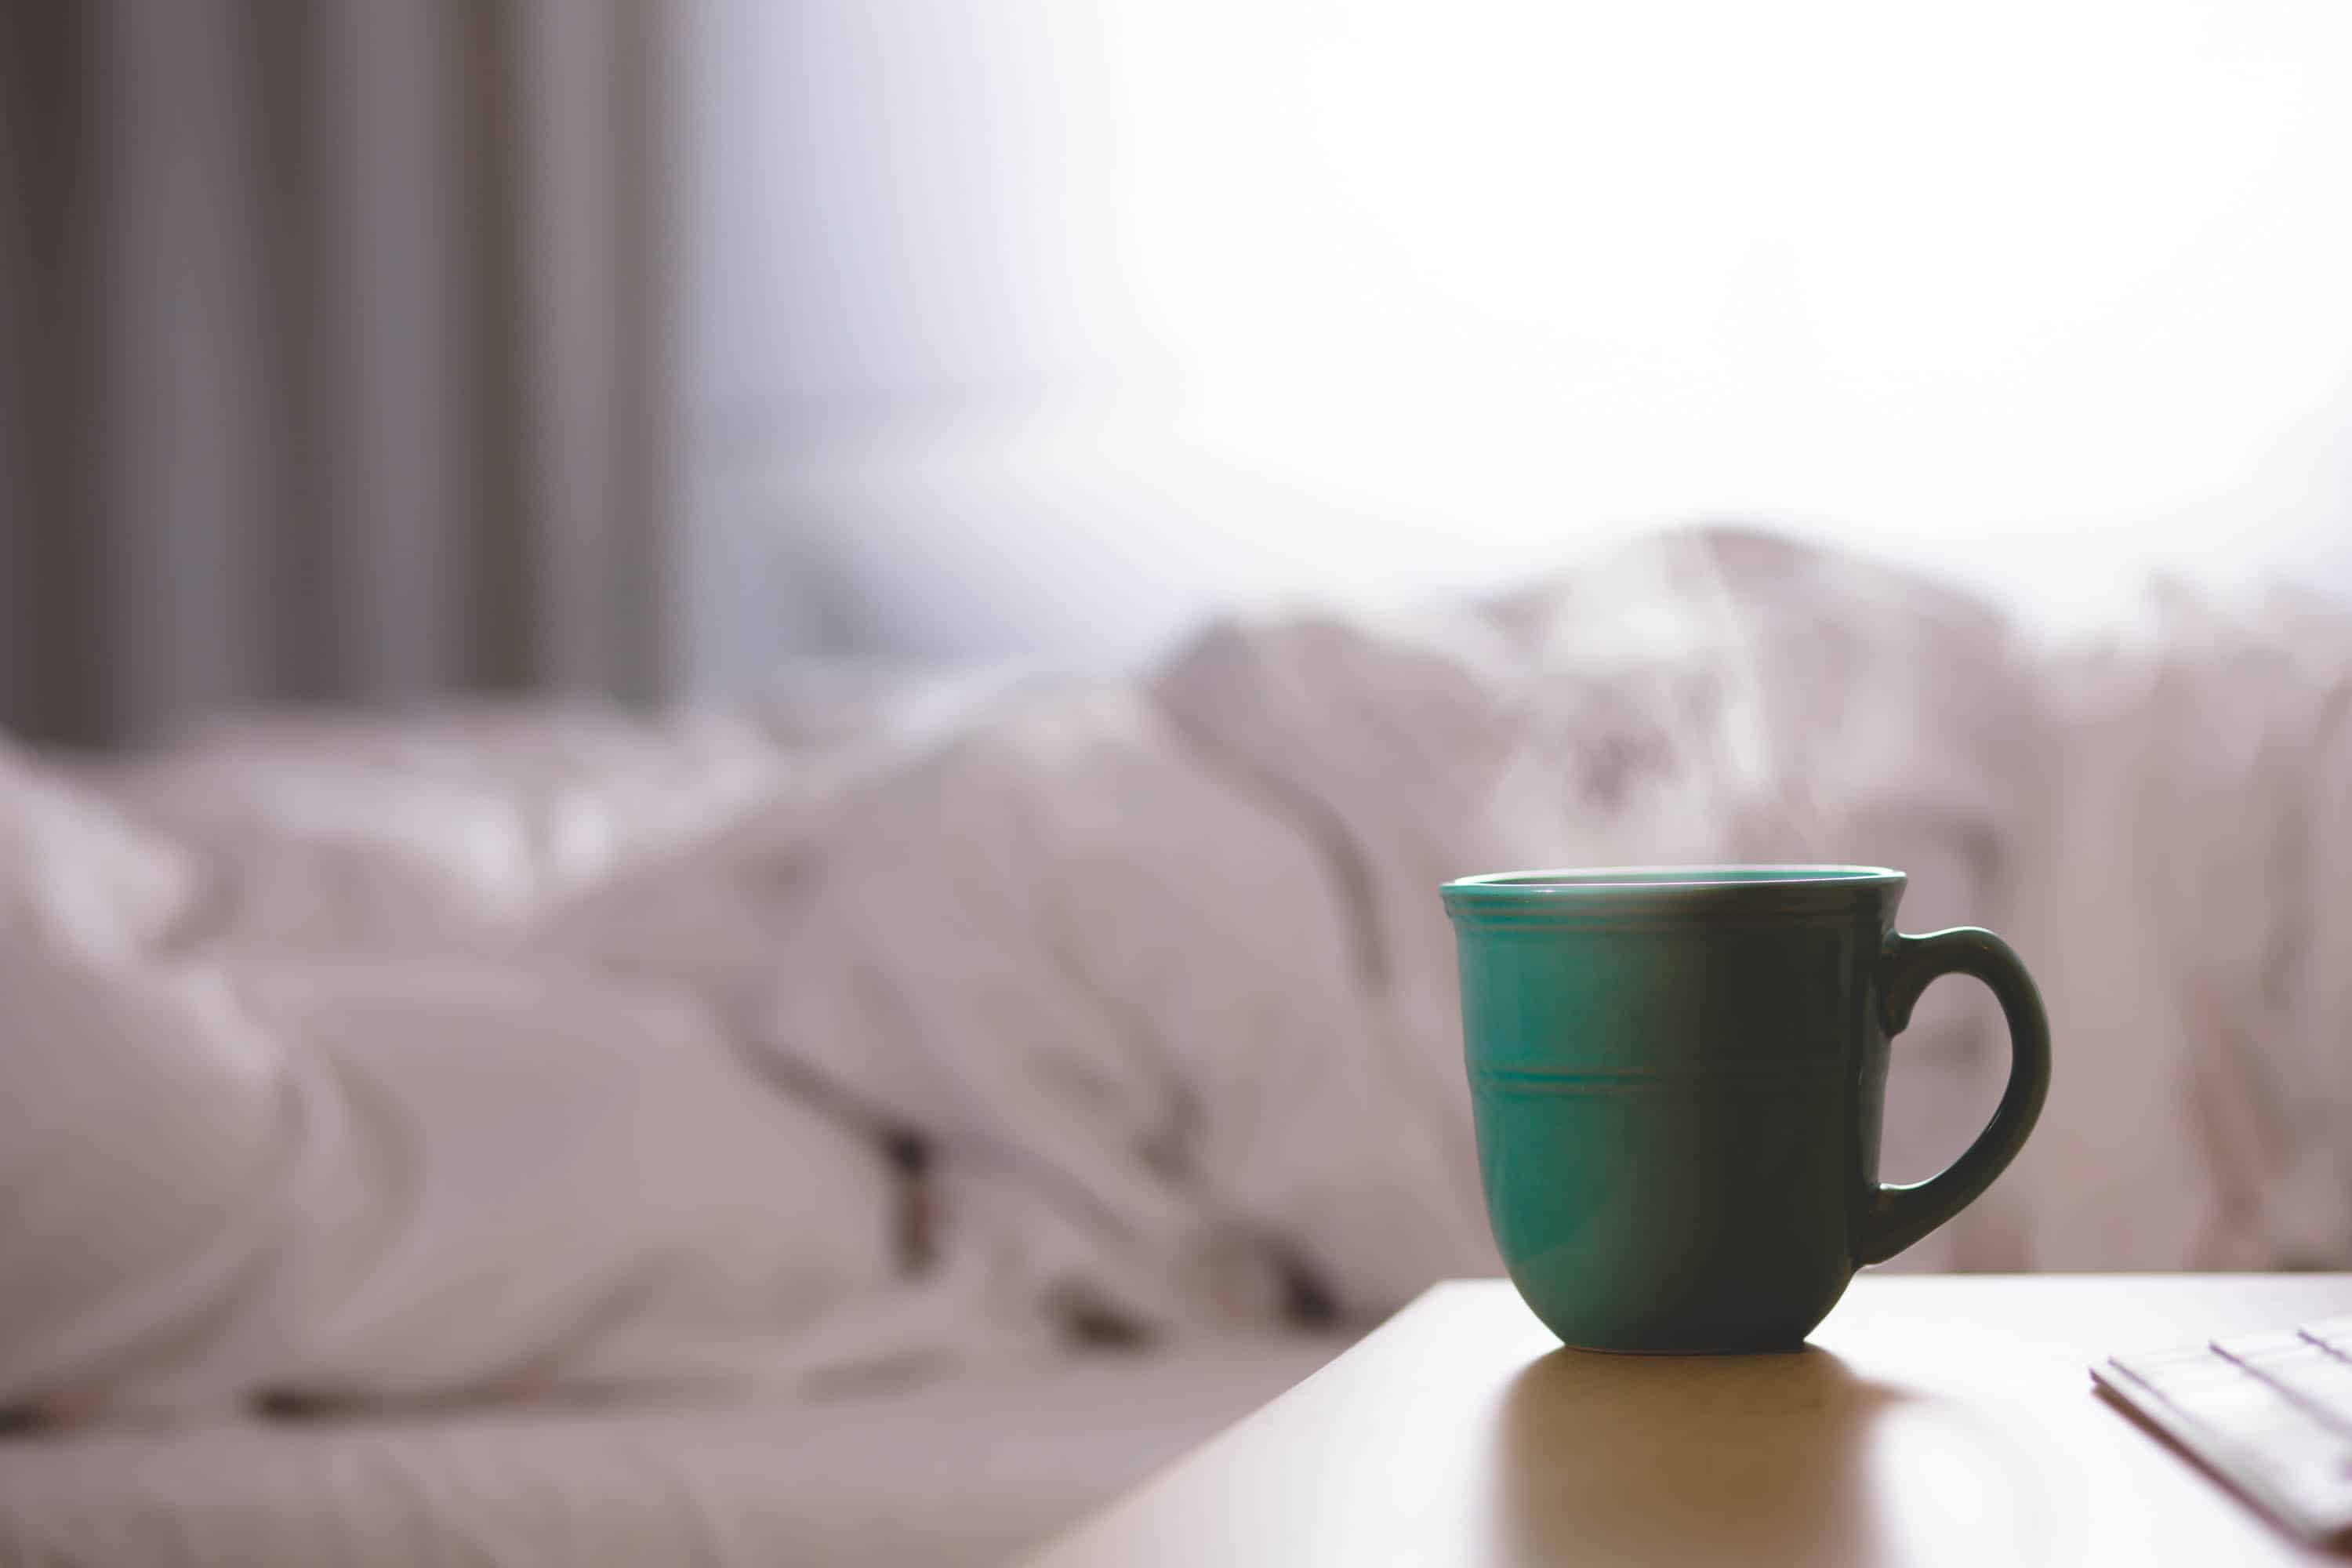 Drinking piping hot coffee can cause throat cancer, according to the World Health Organization. But the WHO says coffee may prevent uterine and liver cancer.